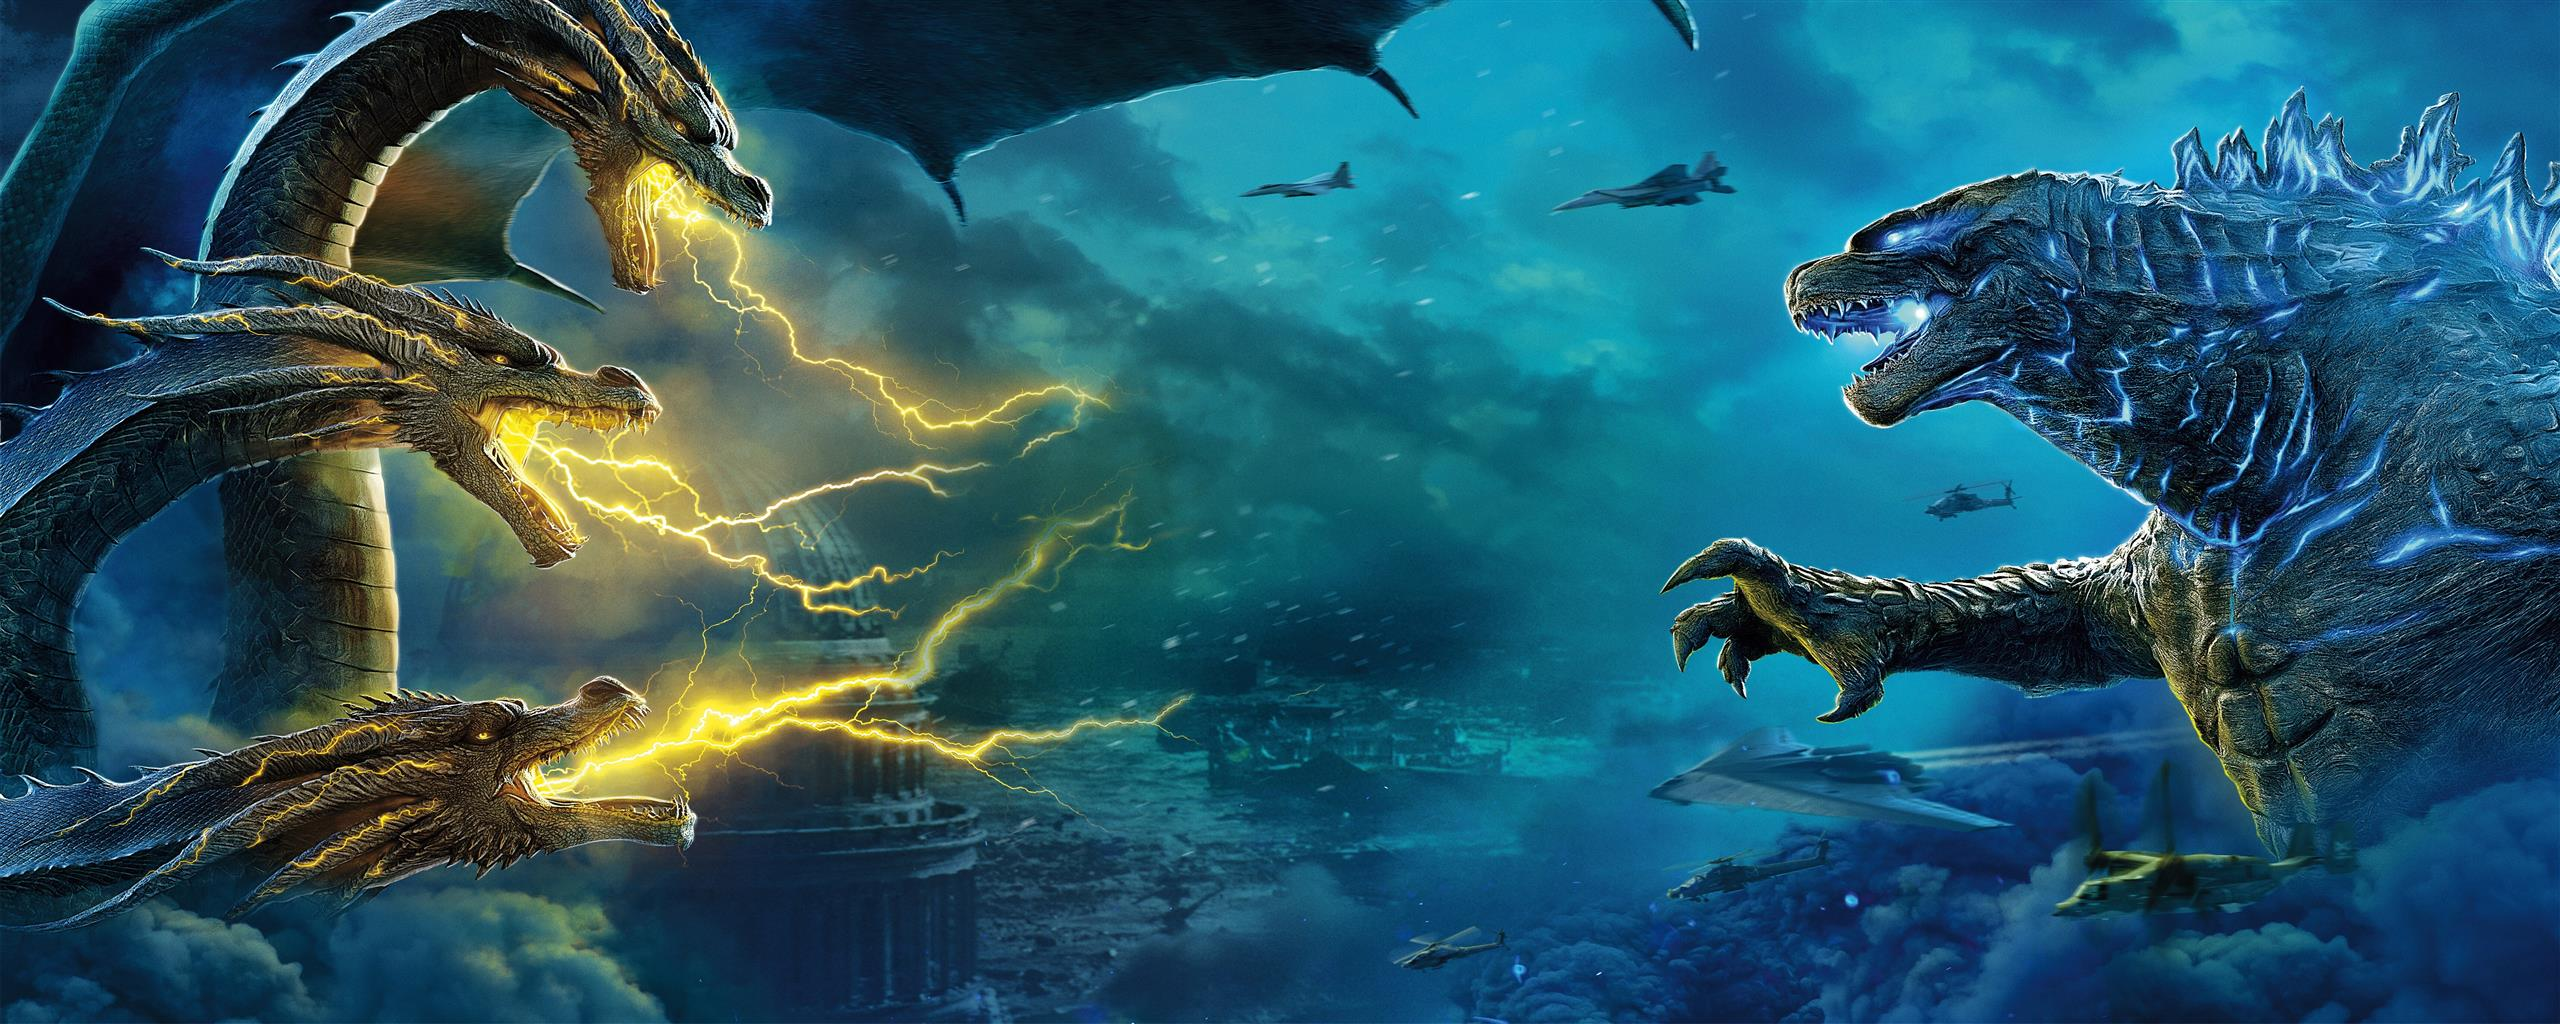 2560x1024 2019 Movie Wallpaper of Godzilla King of the Monsters